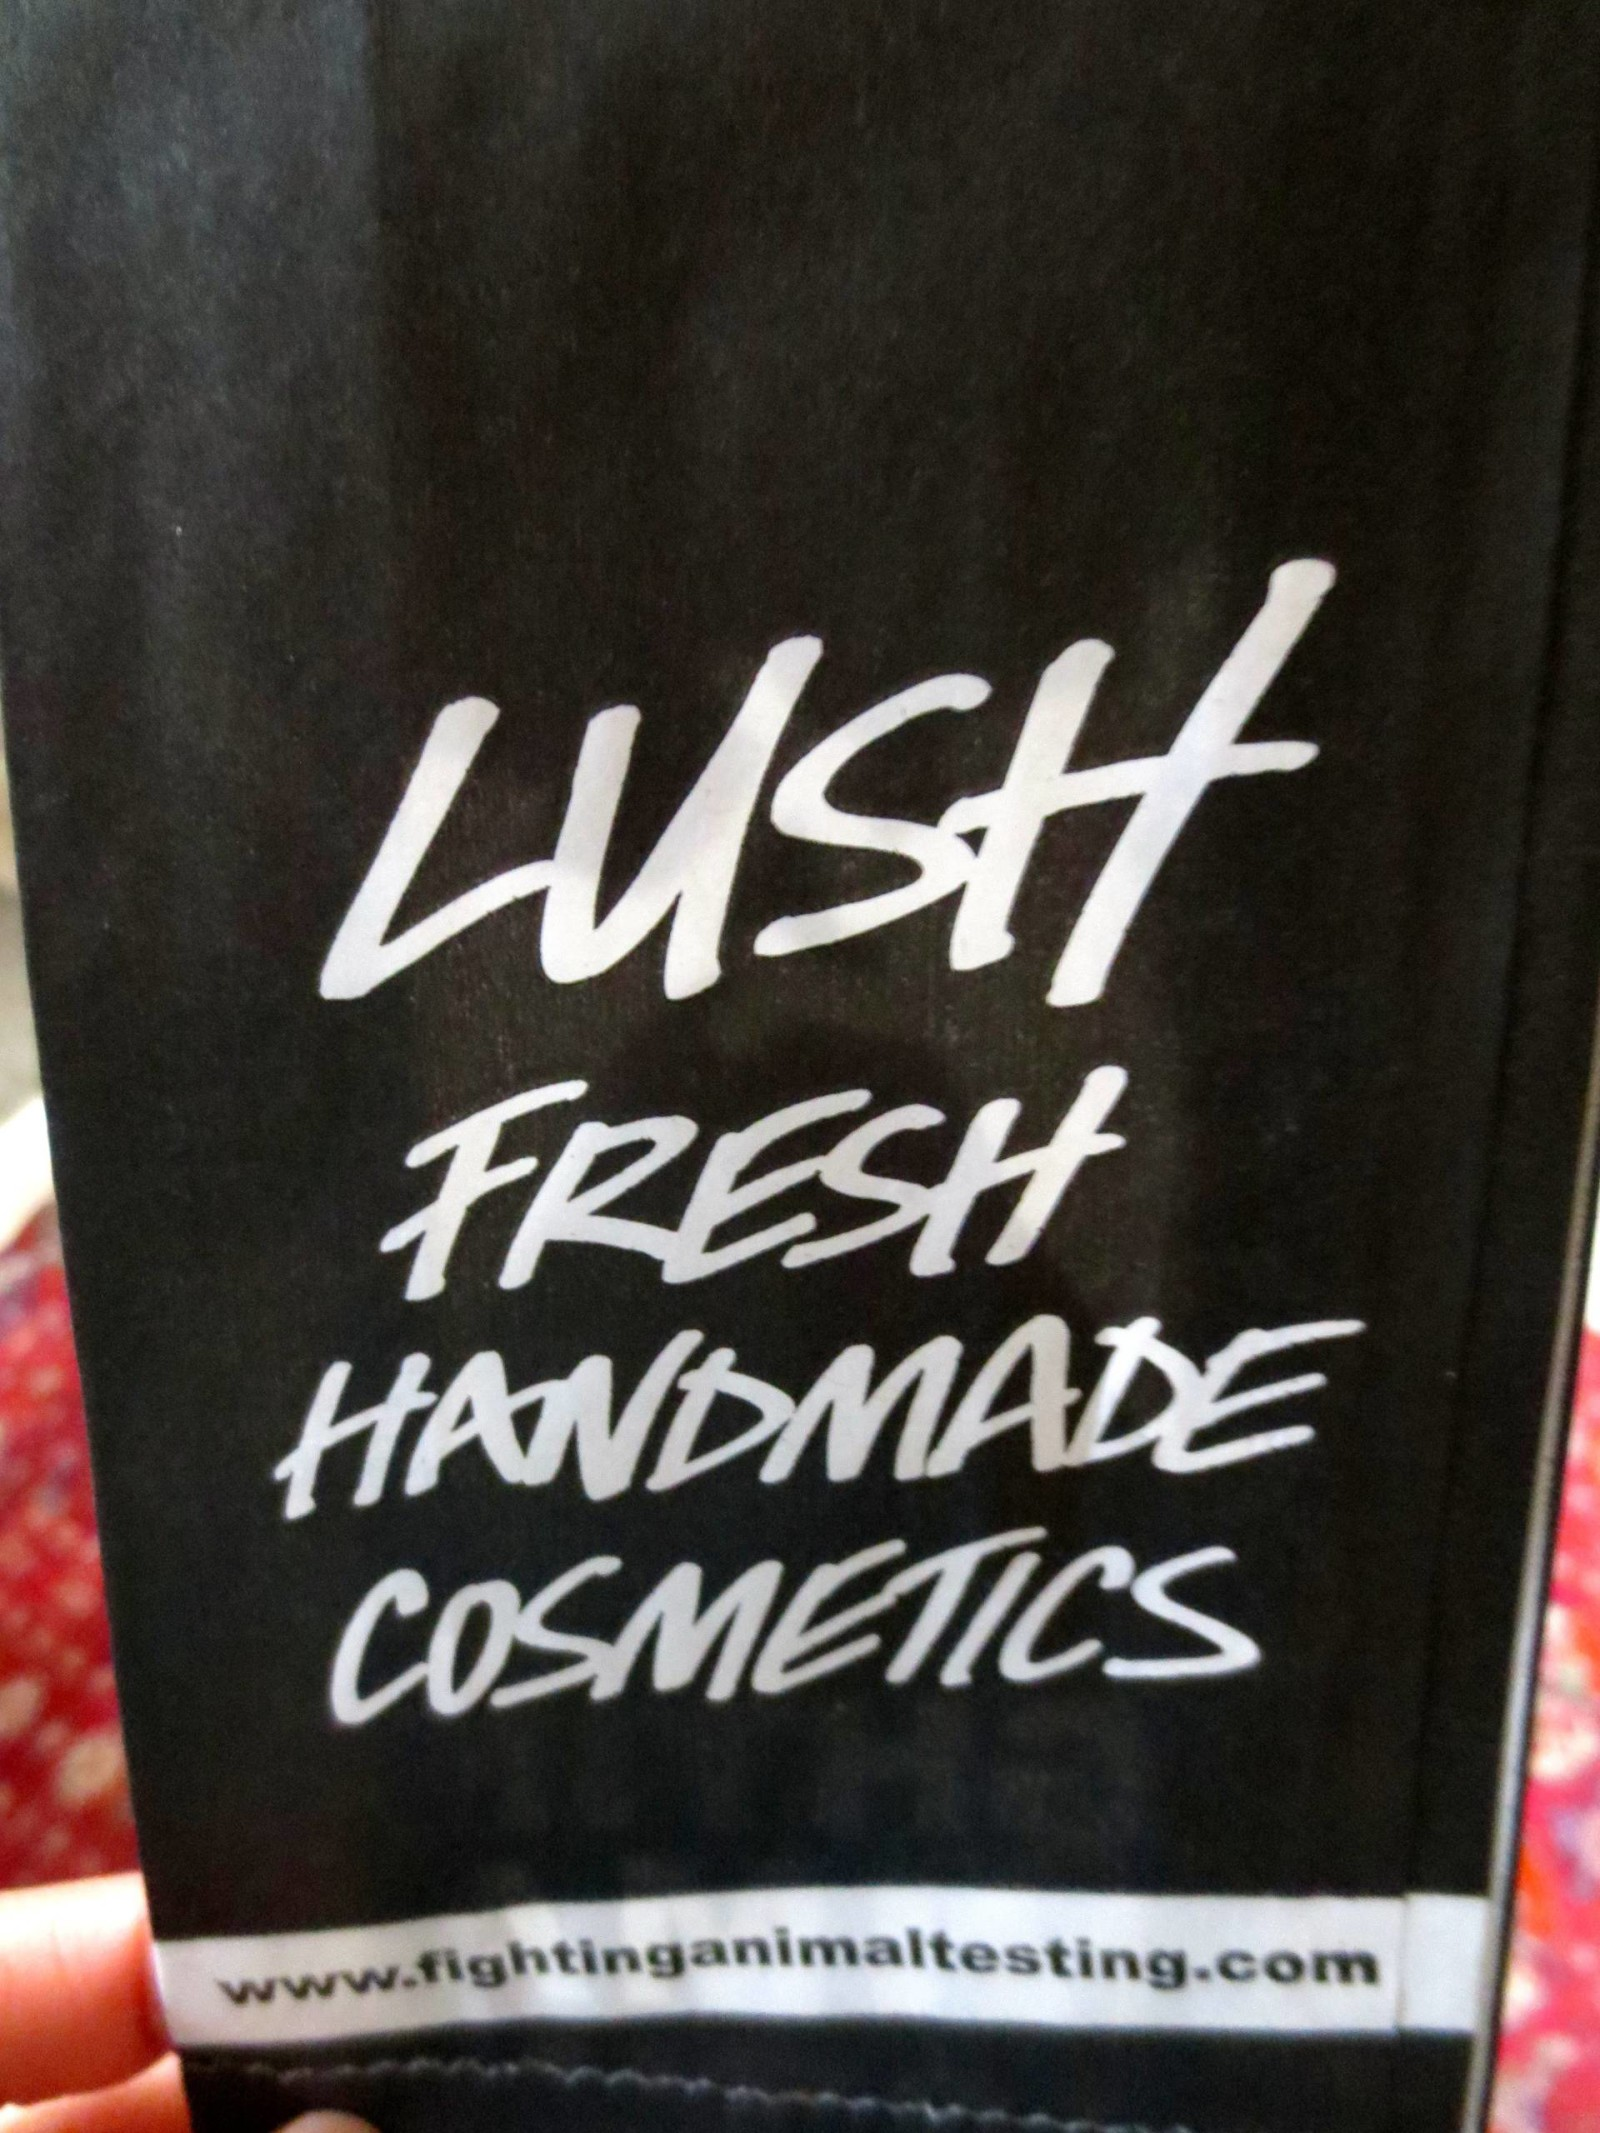 I'm falling in love with Lush all over again – ethical, fresh handmade cosmetics on the high street